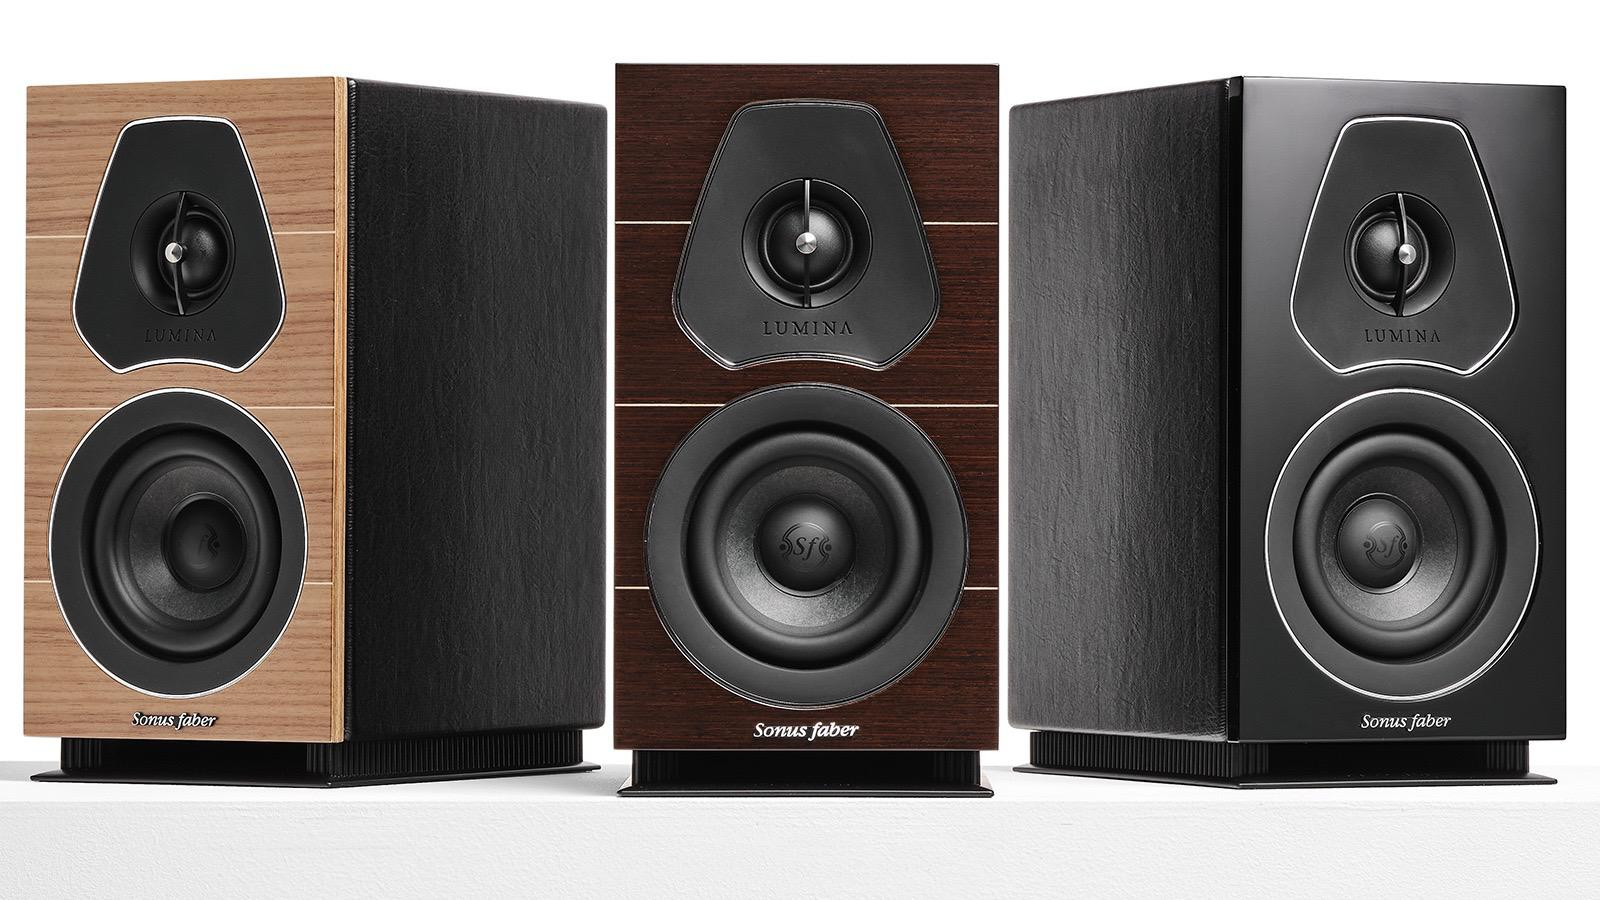 Sonus Faber Lumina I Bookshelf Speakers